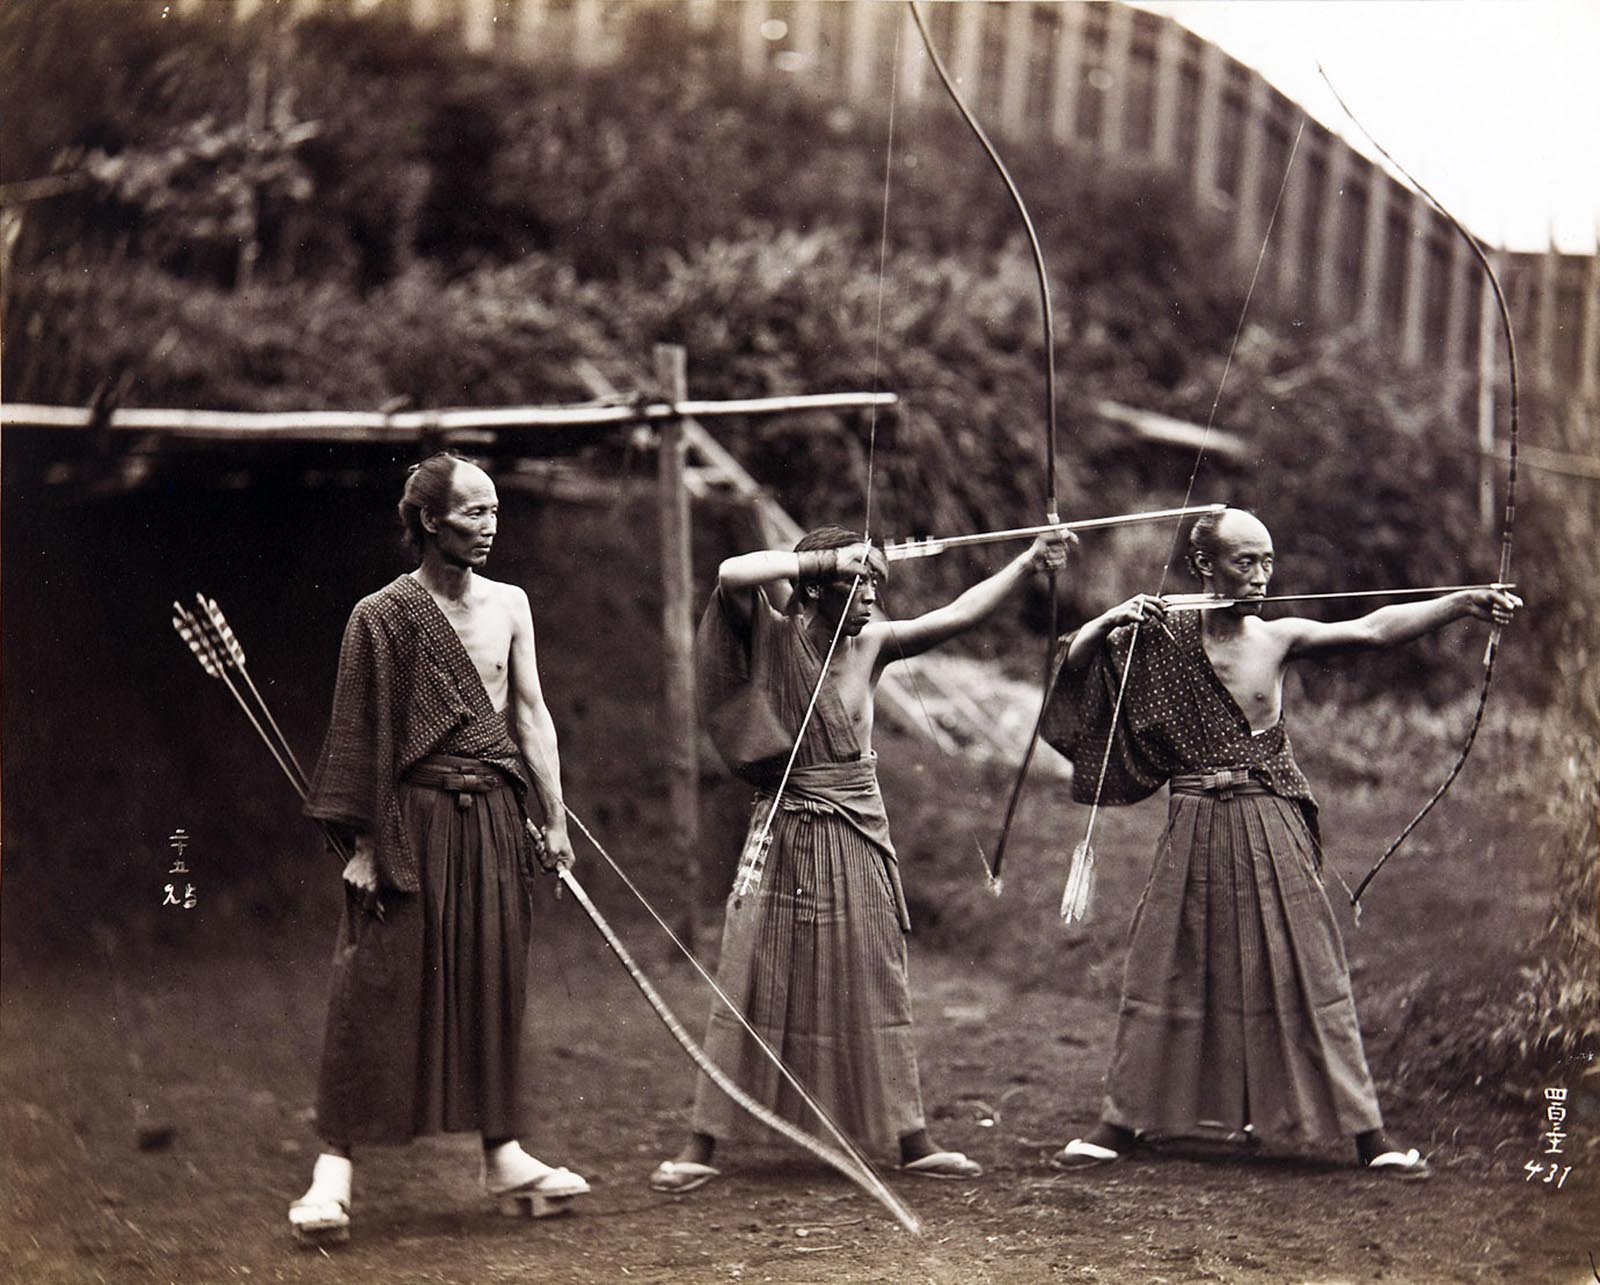 Three archers stand poised in an outdoor setting, 1860 - ca. 1900.